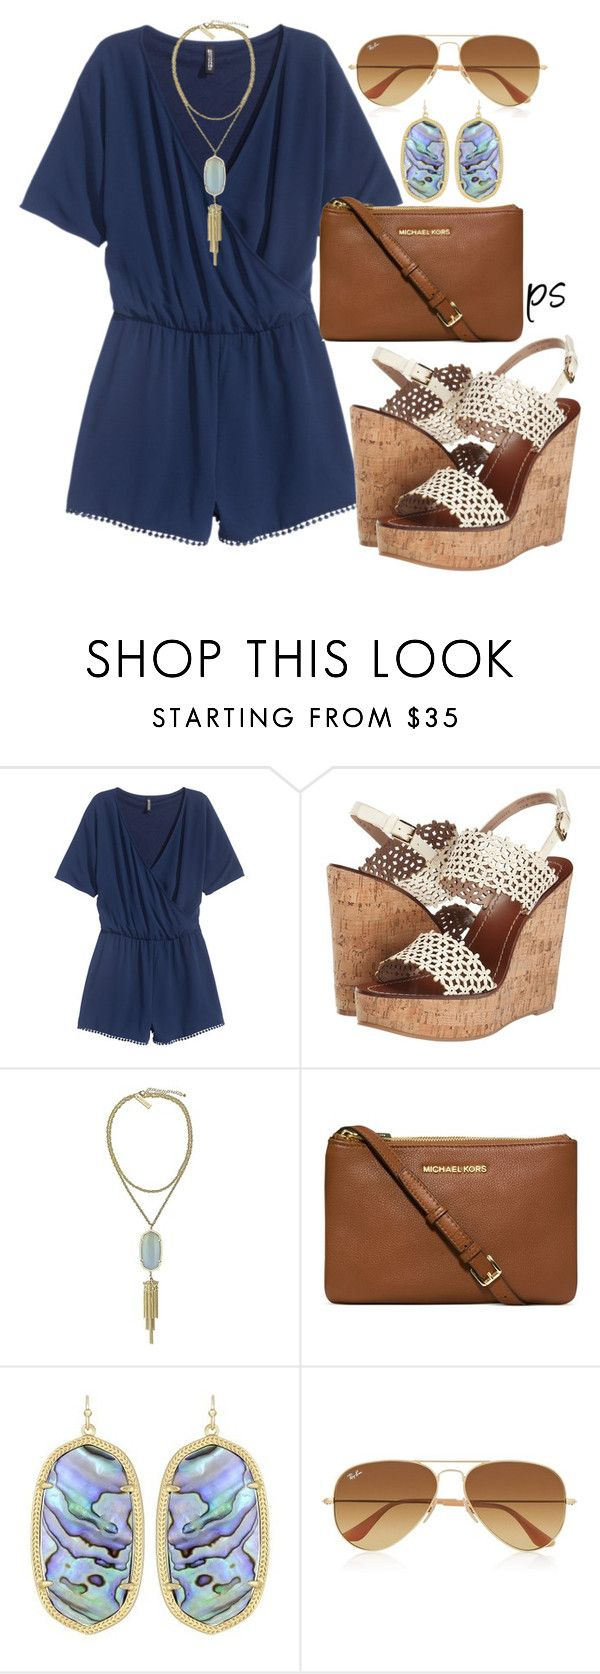 """""""Good Friday"""" by prep-society ❤ liked on Polyvore featuring Tory Burch, Kendra Scott, Michael Kors and Ray-Ban"""